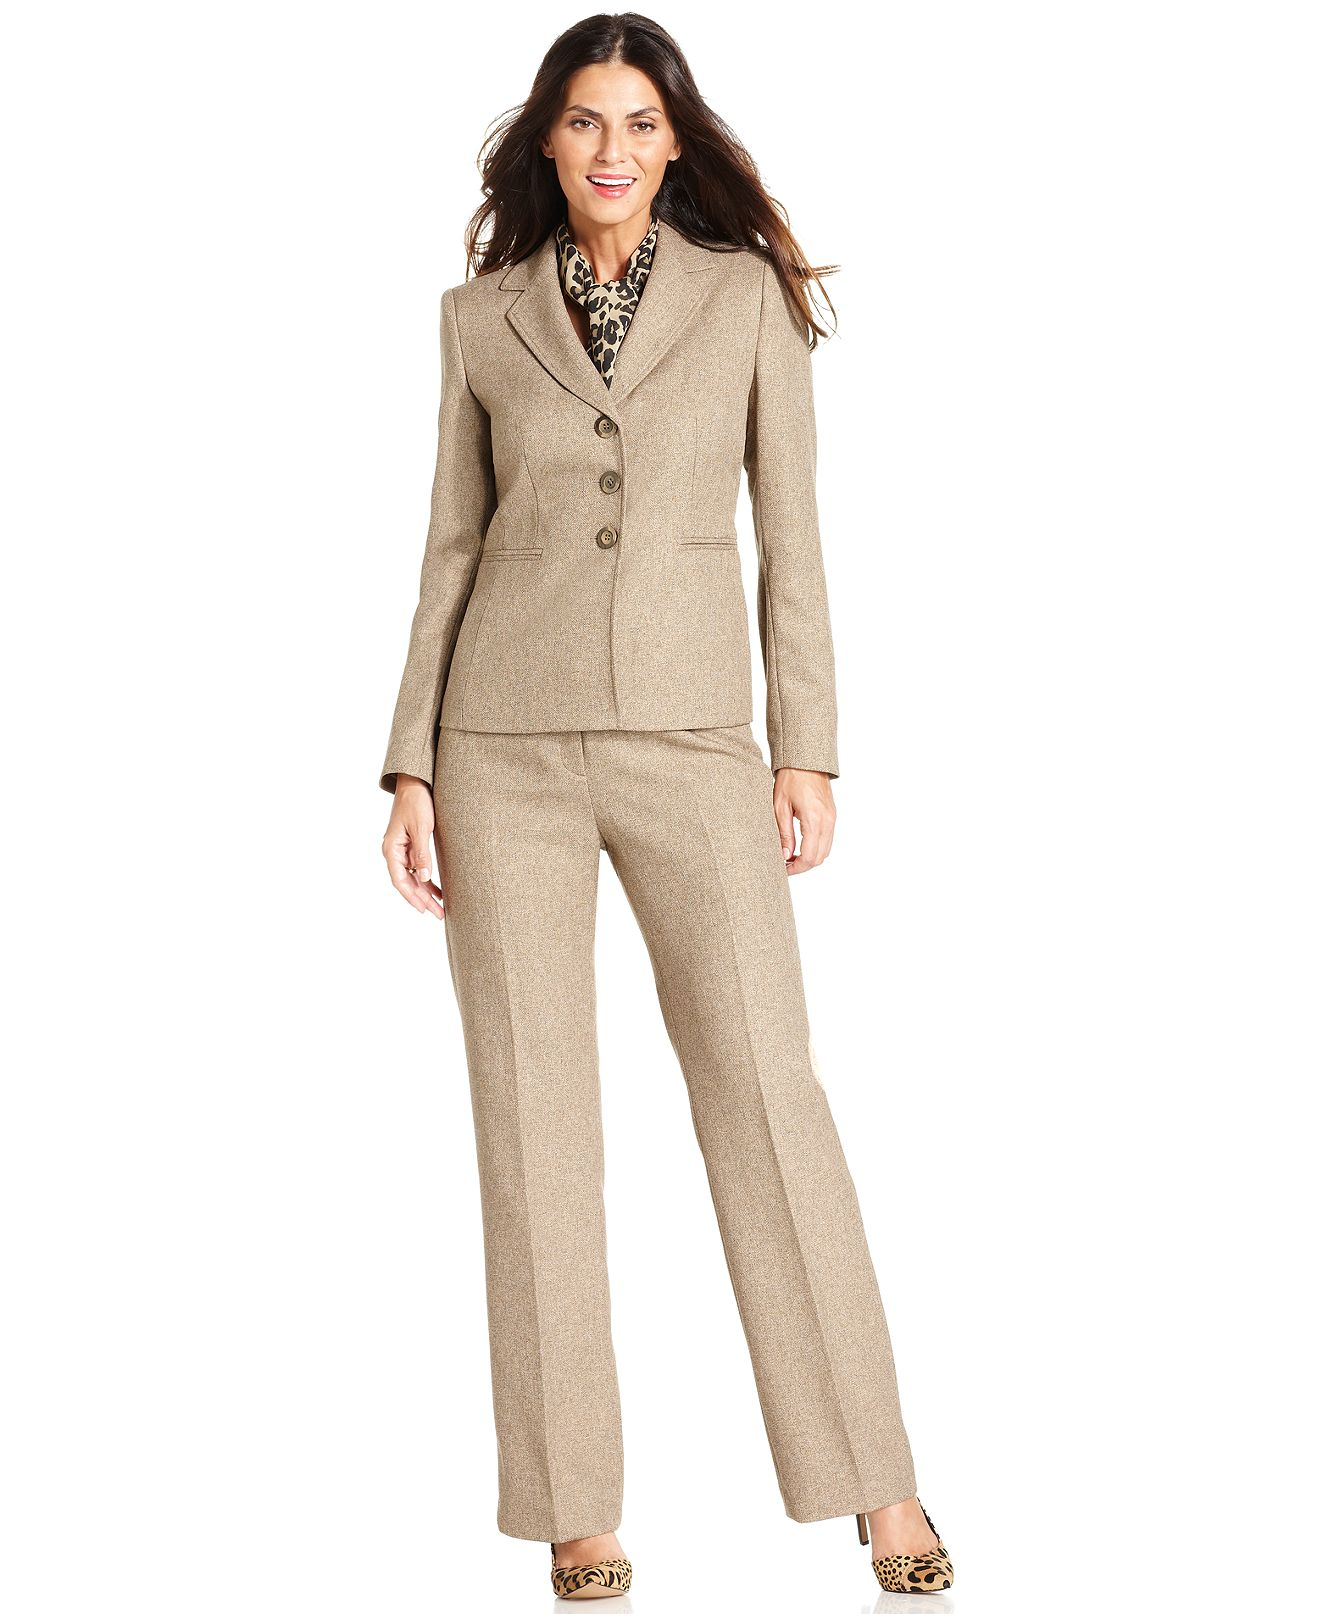 plus size womens pant suits for weddings photo - 2